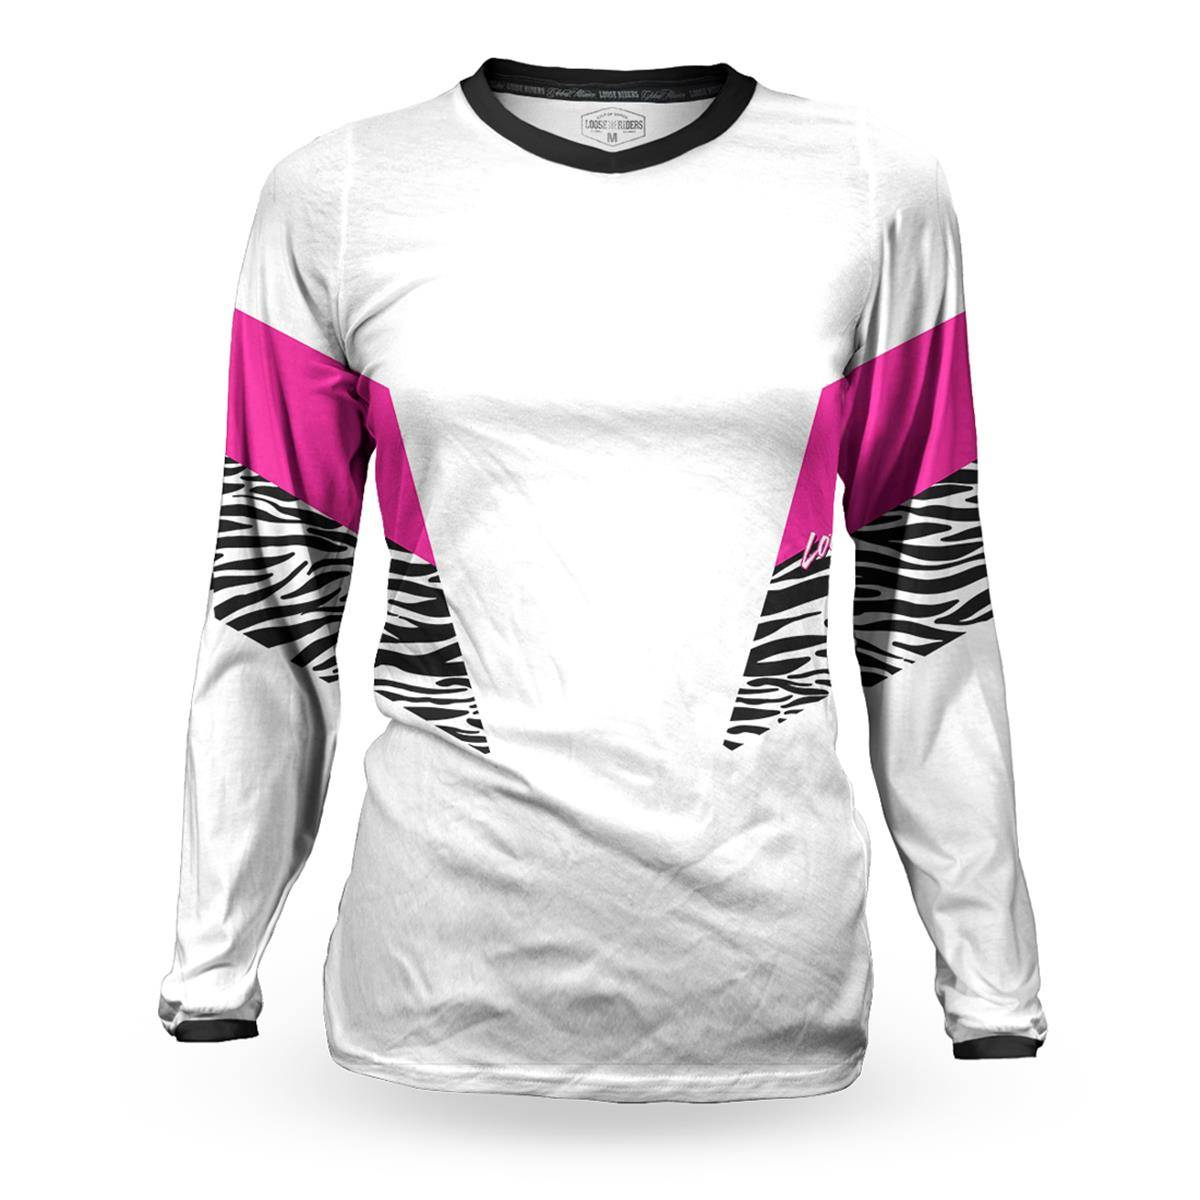 Loose Riders Femme Maillot VTT Manches Longues Cult of Shred - L - Blanc